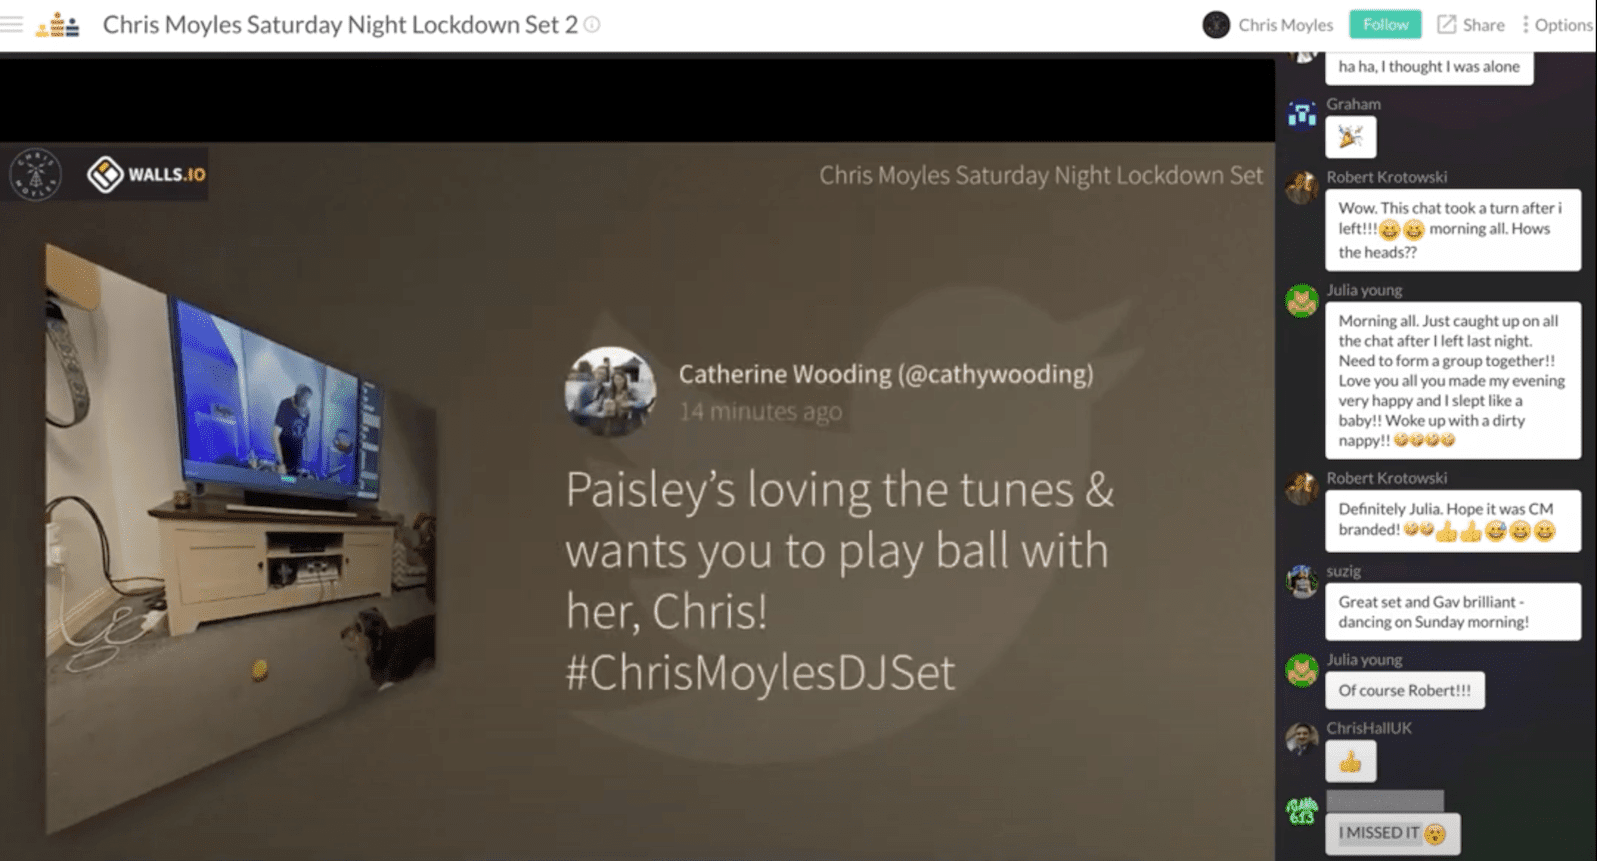 A screenshot taken during of DJ Chris Moyles' Saturday Night Lockdown Sets. The live-stream displays a tweet from a viewer who's showing her dog watching the DJ's set on a screen.